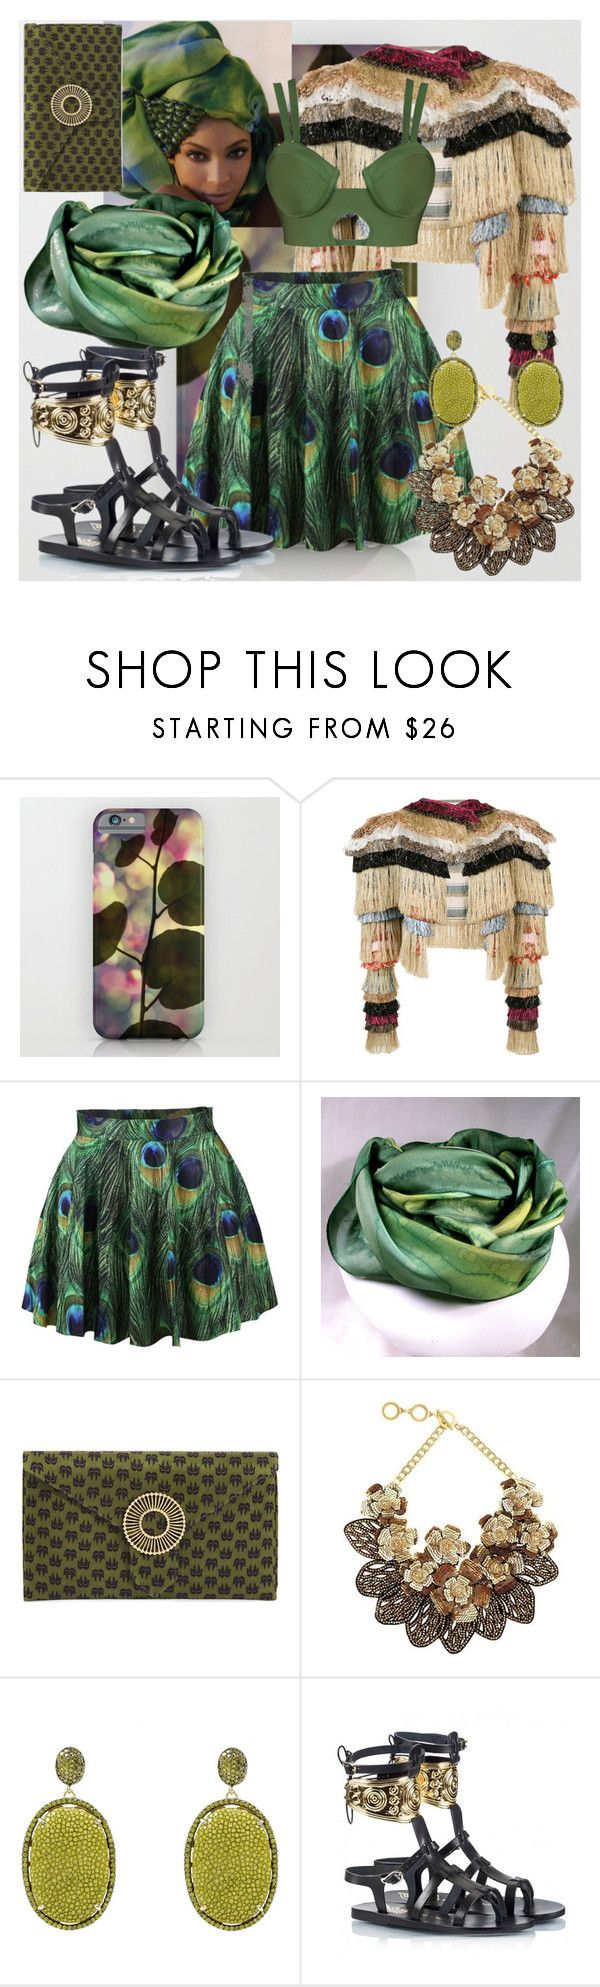 """Exotic Green !!"" by nova5ta5ia ❤ liked on Polyvore featuring Vivienne Westwood, House of Deréon, Wilbur & Gussie, Forest of Chintz, Ancient Greek Sandals, contest, kiwi and fiftyshadeofgreen"